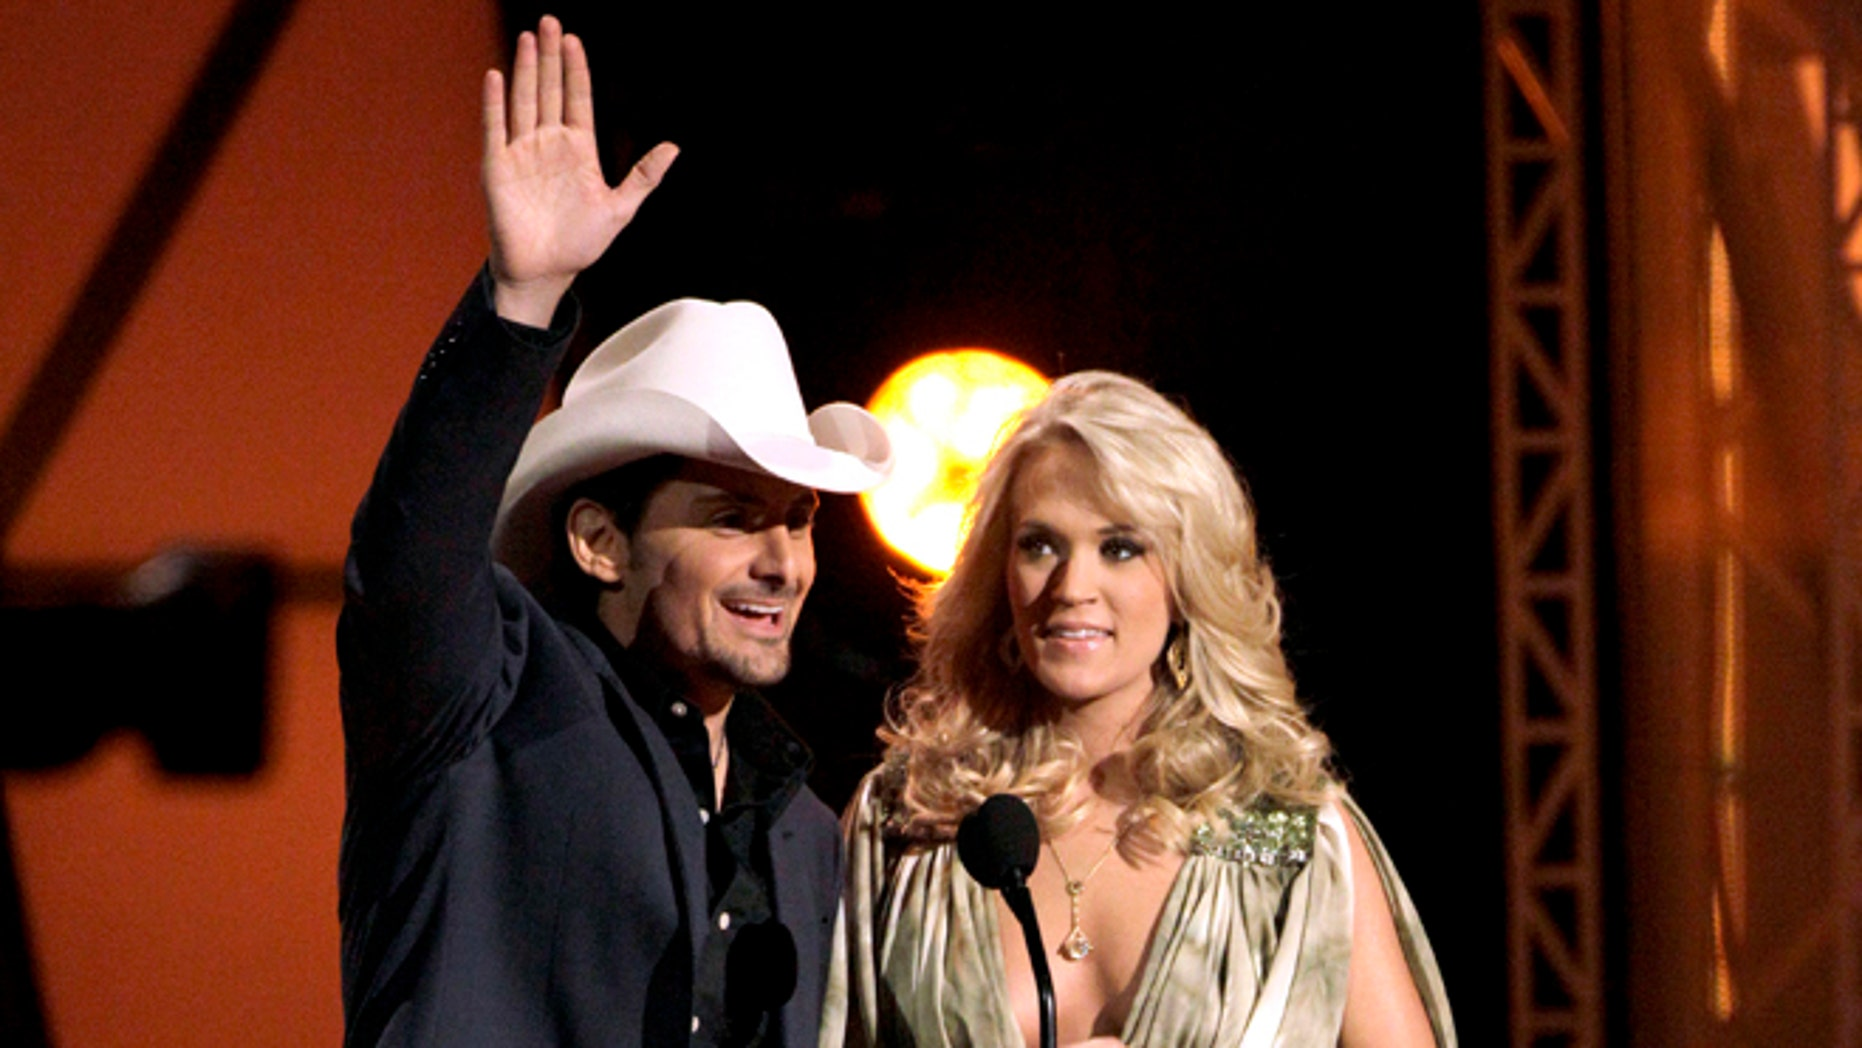 Nov. 9, 2011: This file photo shows hosts Brad Paisley, left, and Carrie Underwood speak during the 45th Annual CMA Awards in Nashville, Tenn.